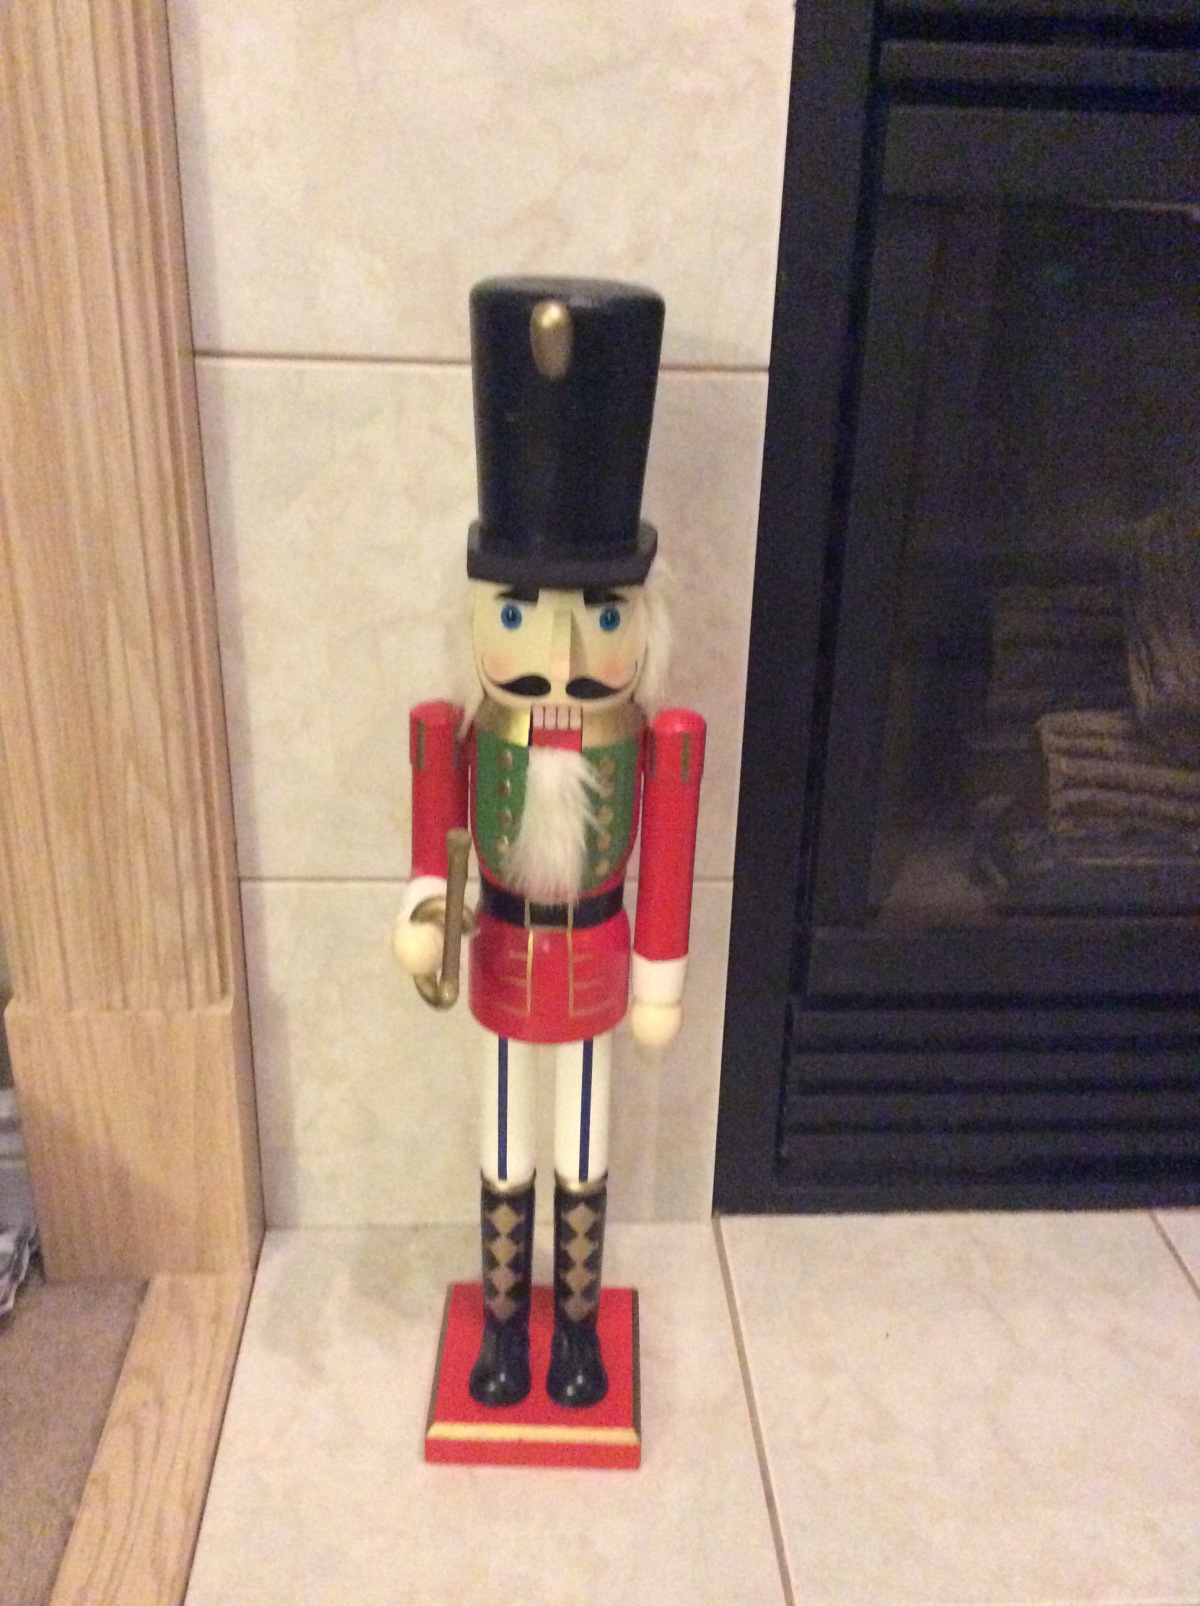 Nutcracker Bandit Strikes Fear in Family